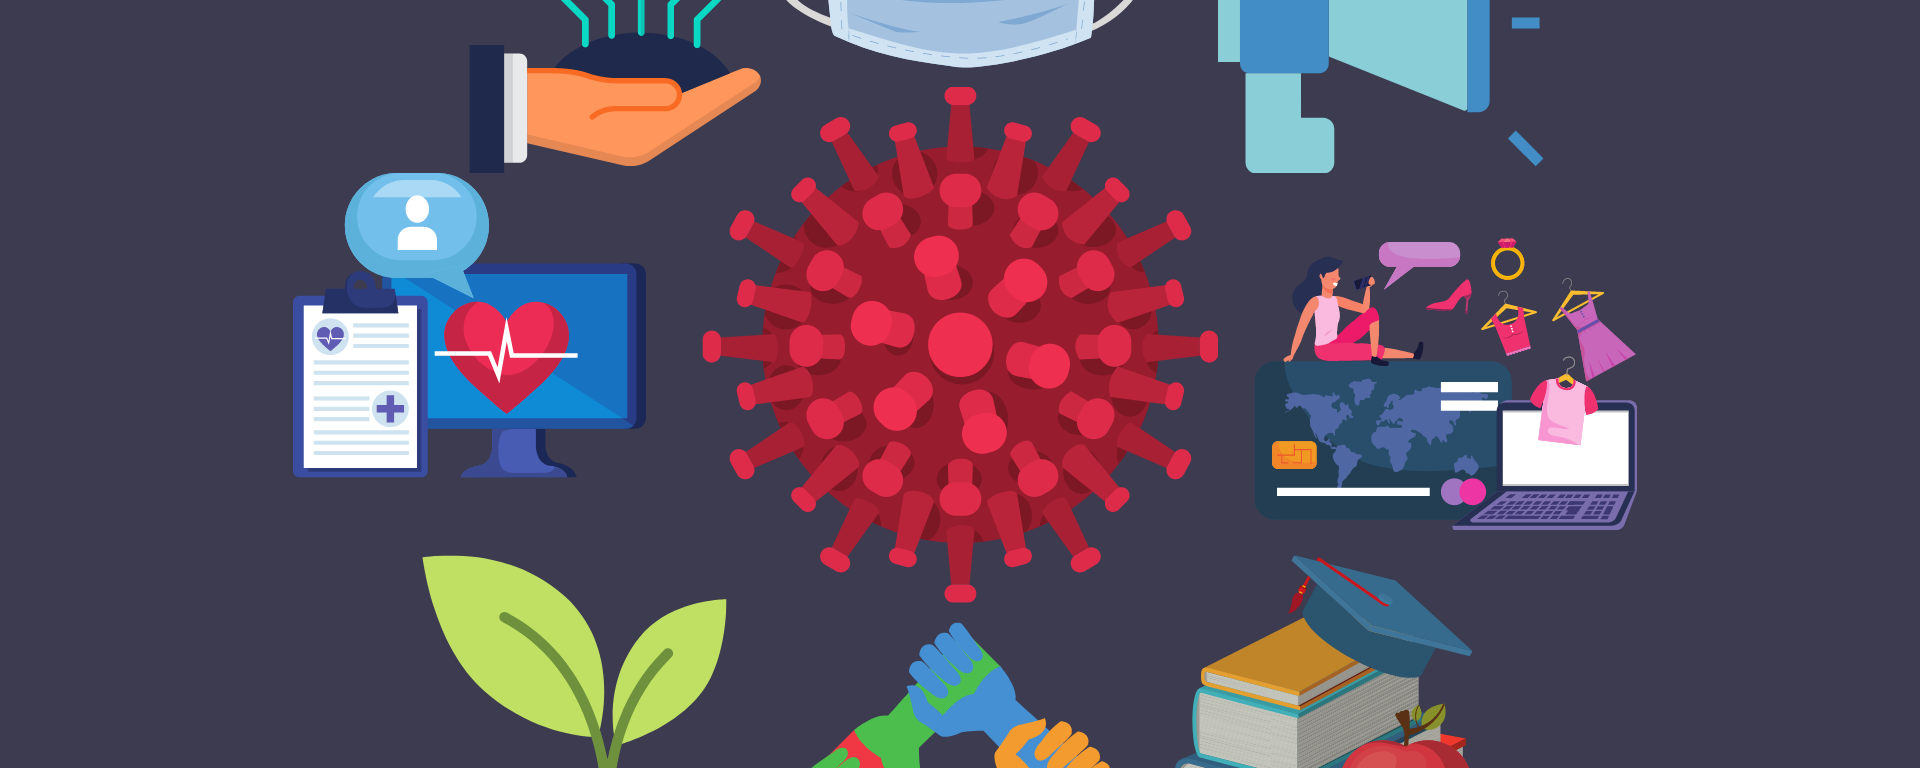 Illustration of the coronavirus, and various cartoon drawings of items such as masks, computers, and books surrounding it.